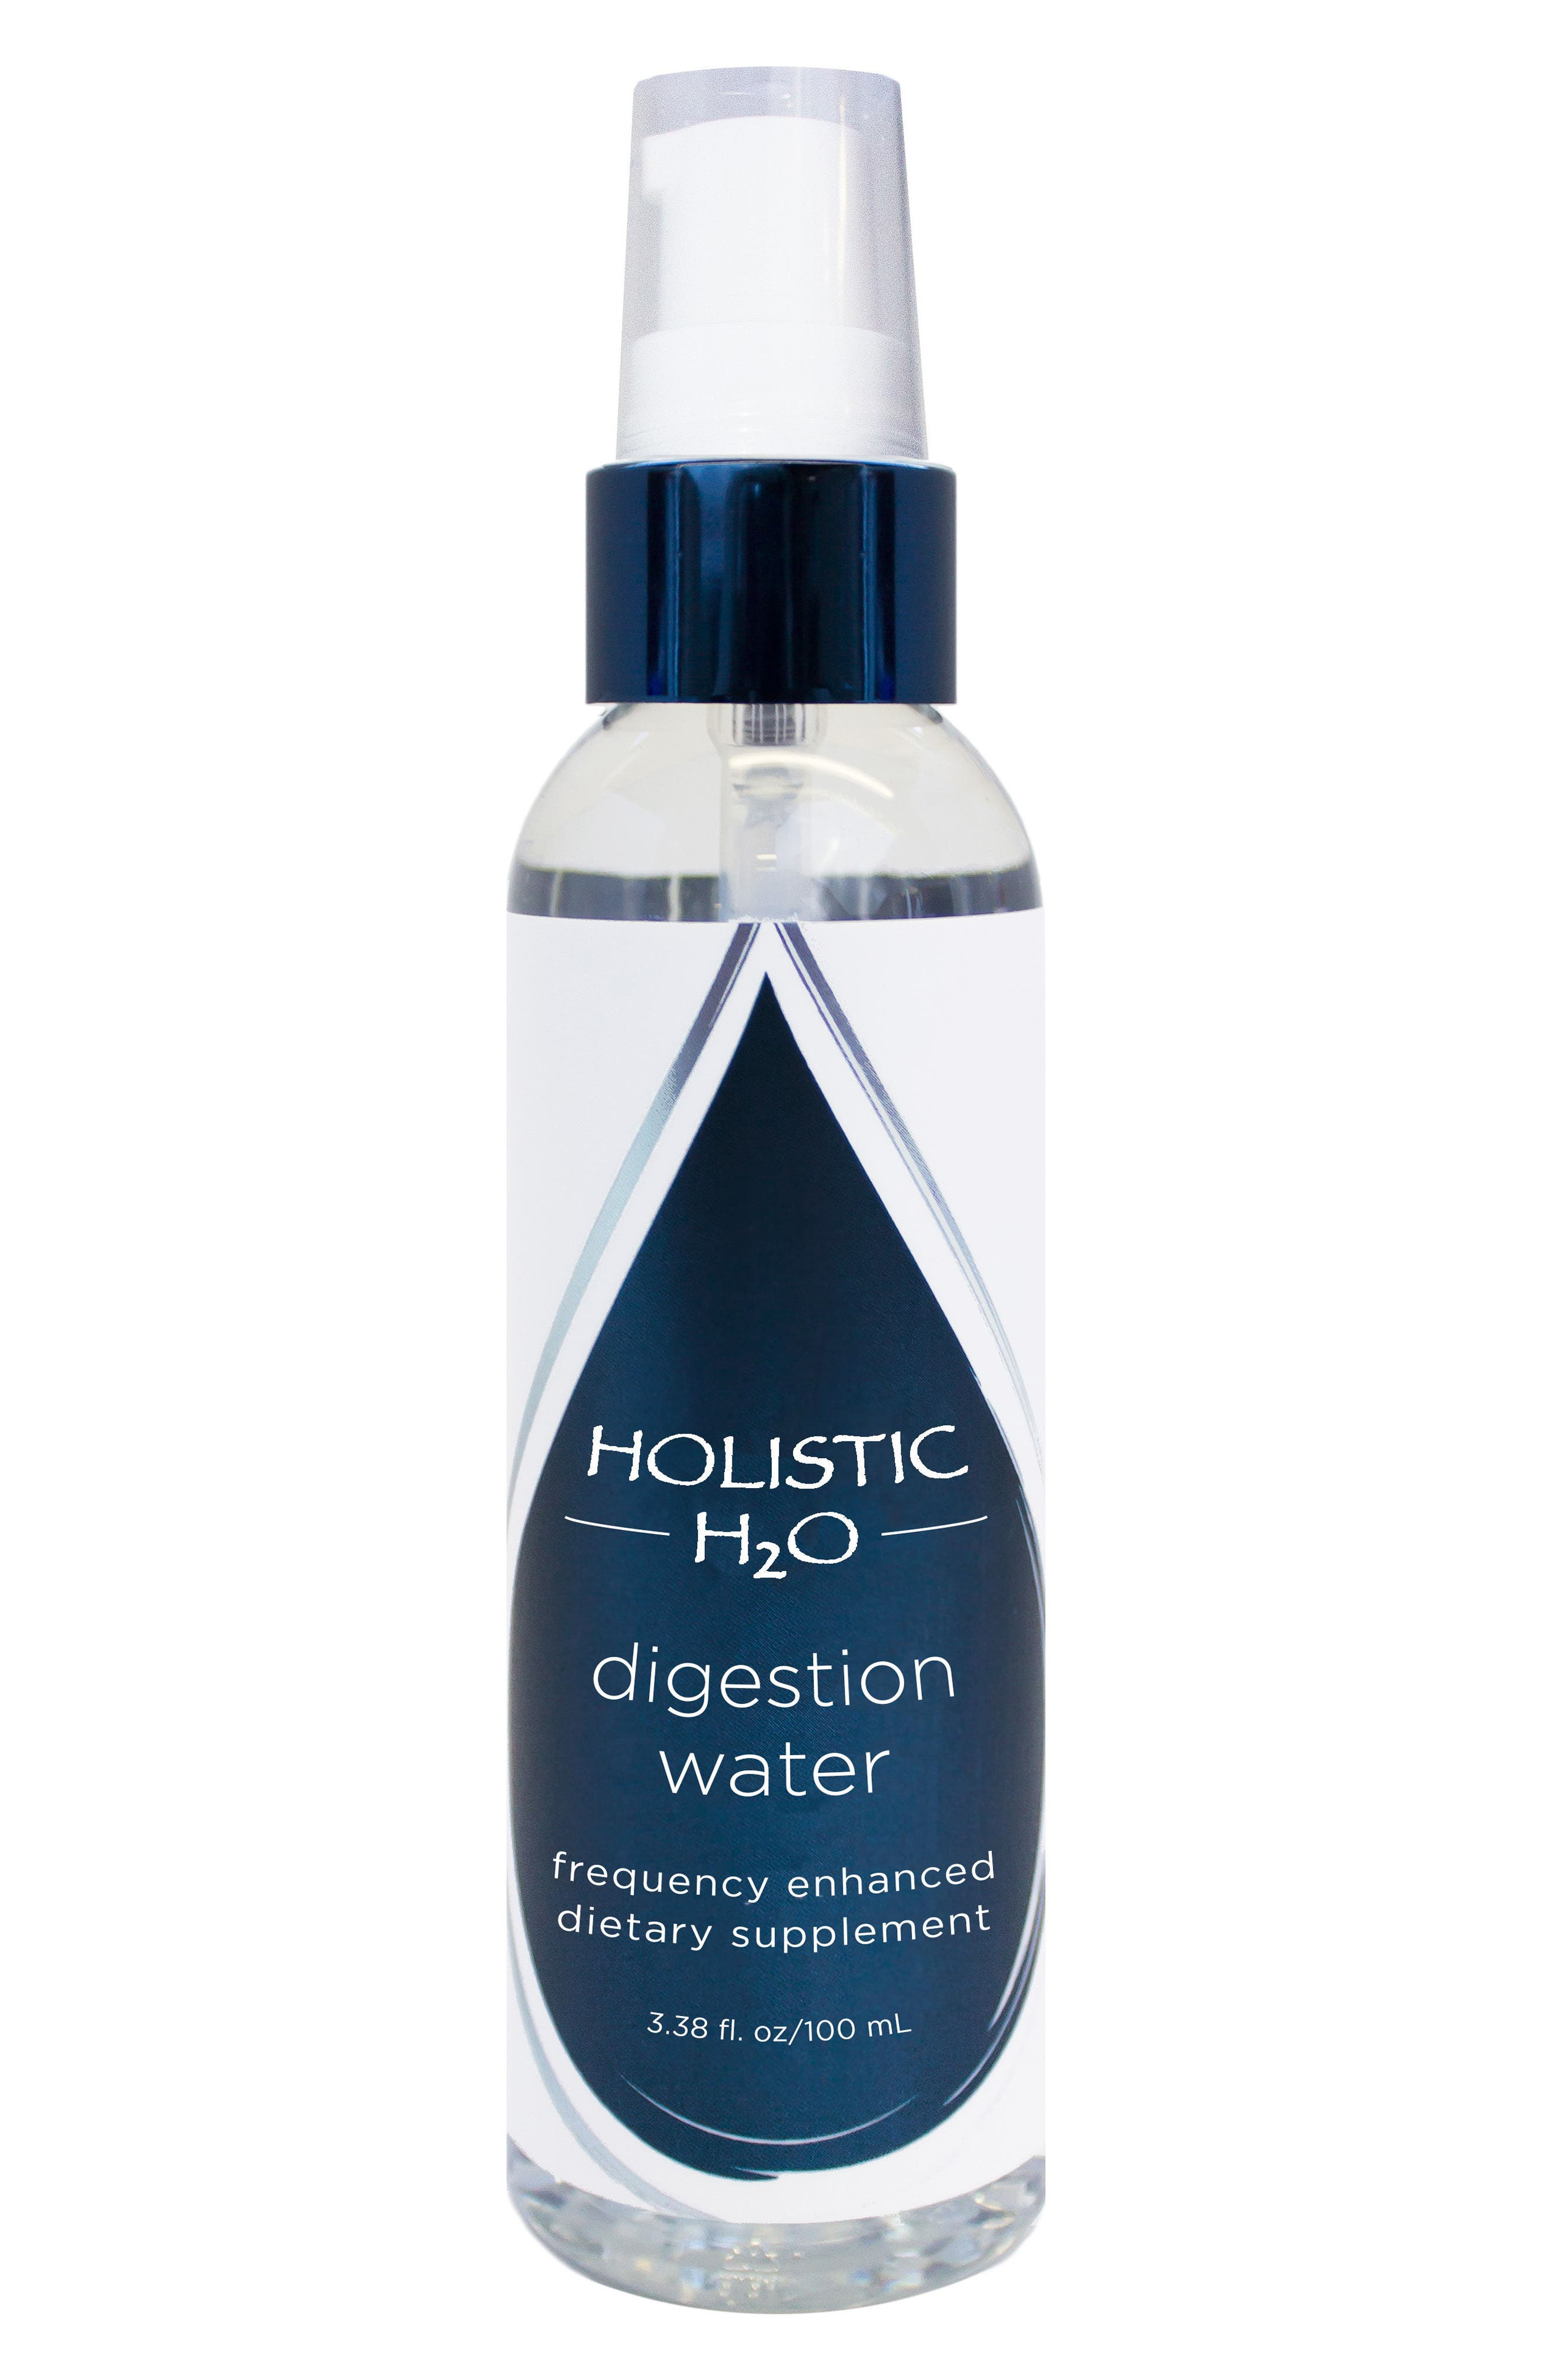 Alternate Image 1 Selected - Holistic H20 Digestion Water Frequency Enhanced Dietary Supplement